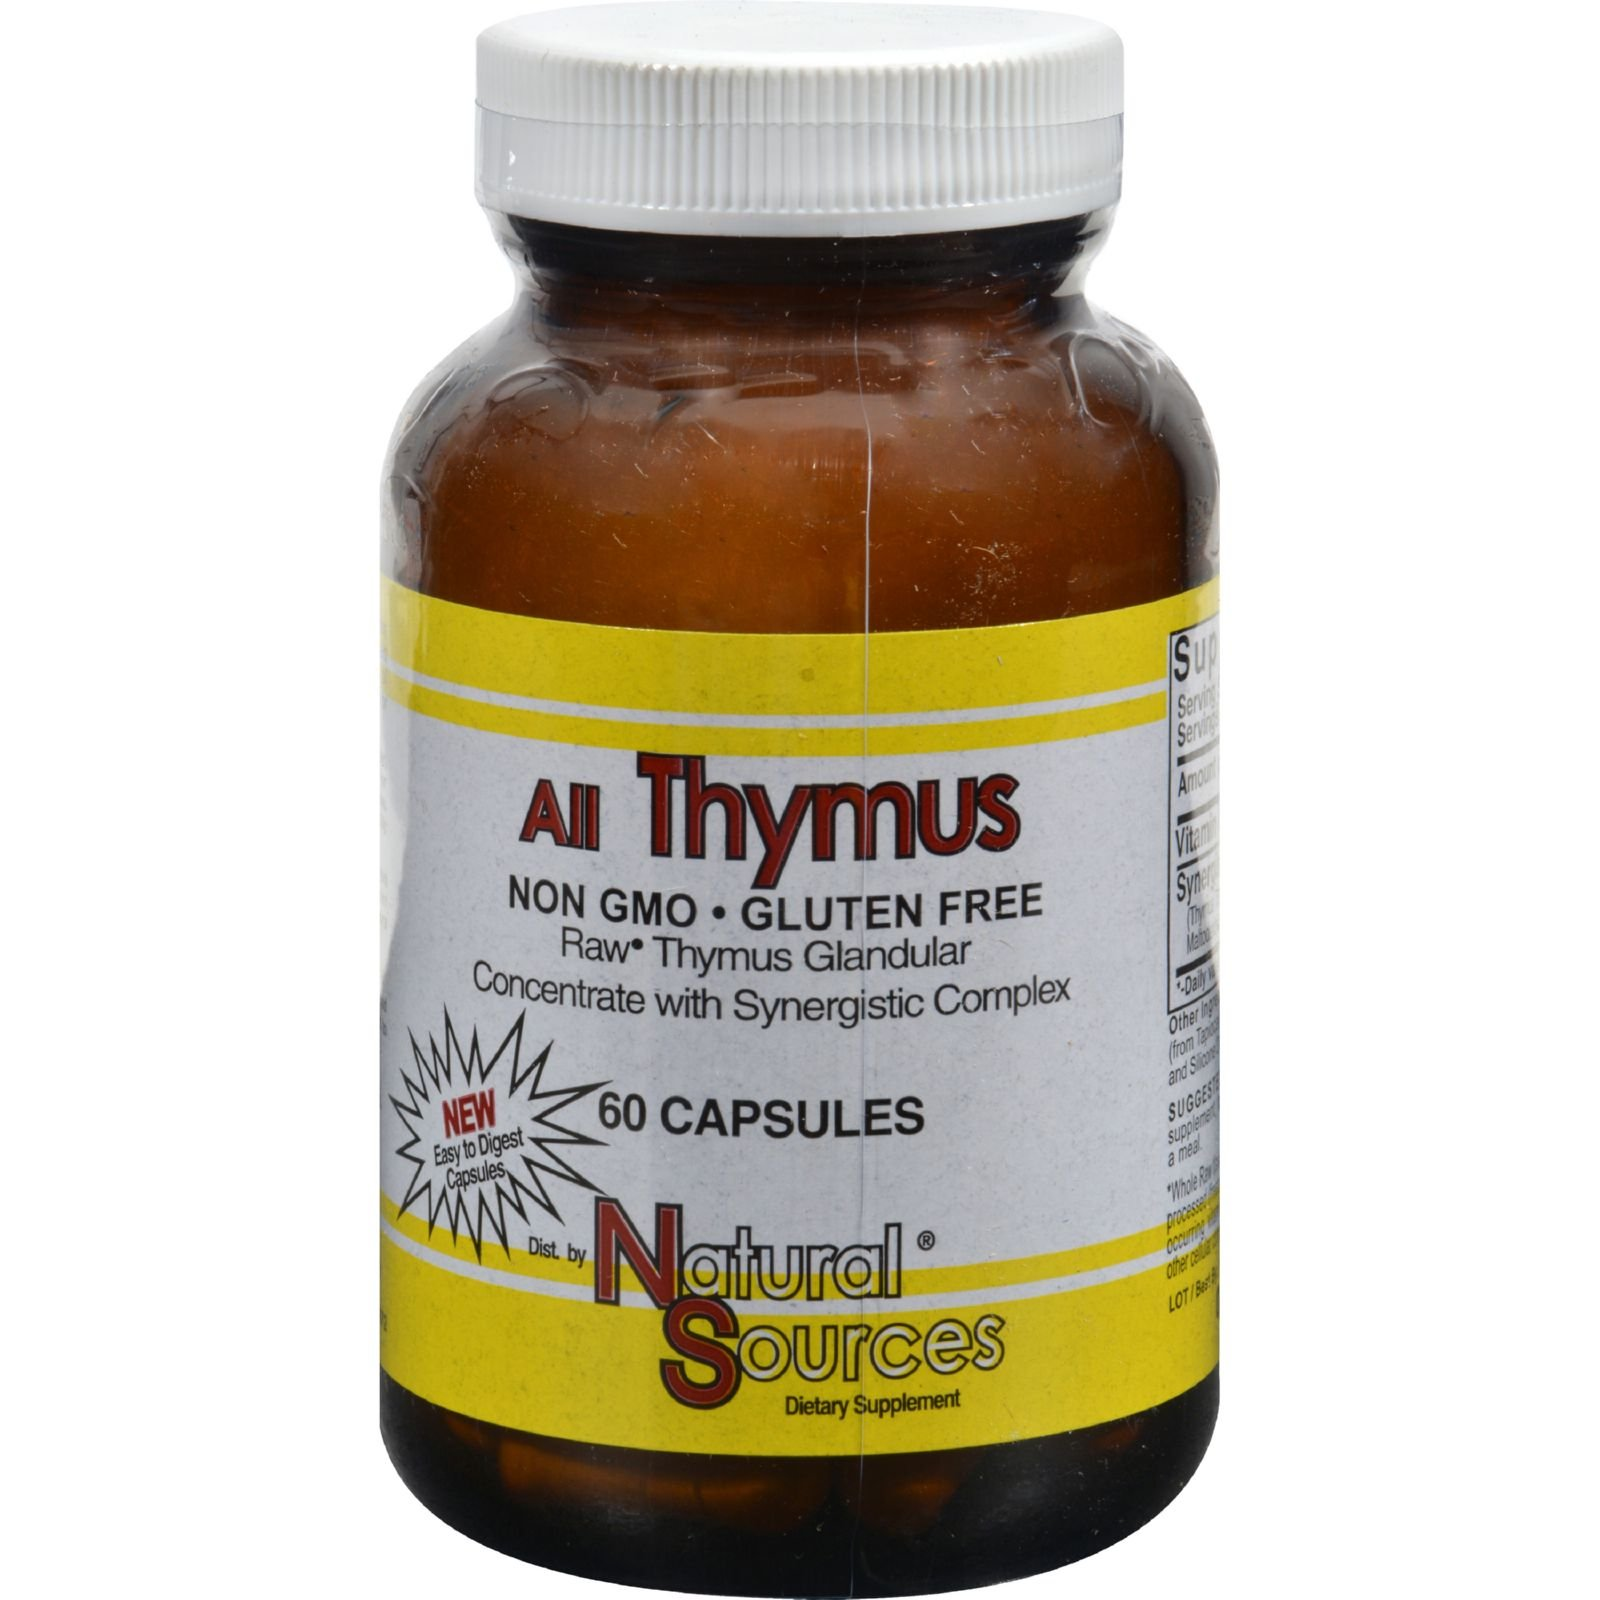 Natural Sources All Thymus - Non GMO - Gluten Free - 60 Capsules (Pack of 2)